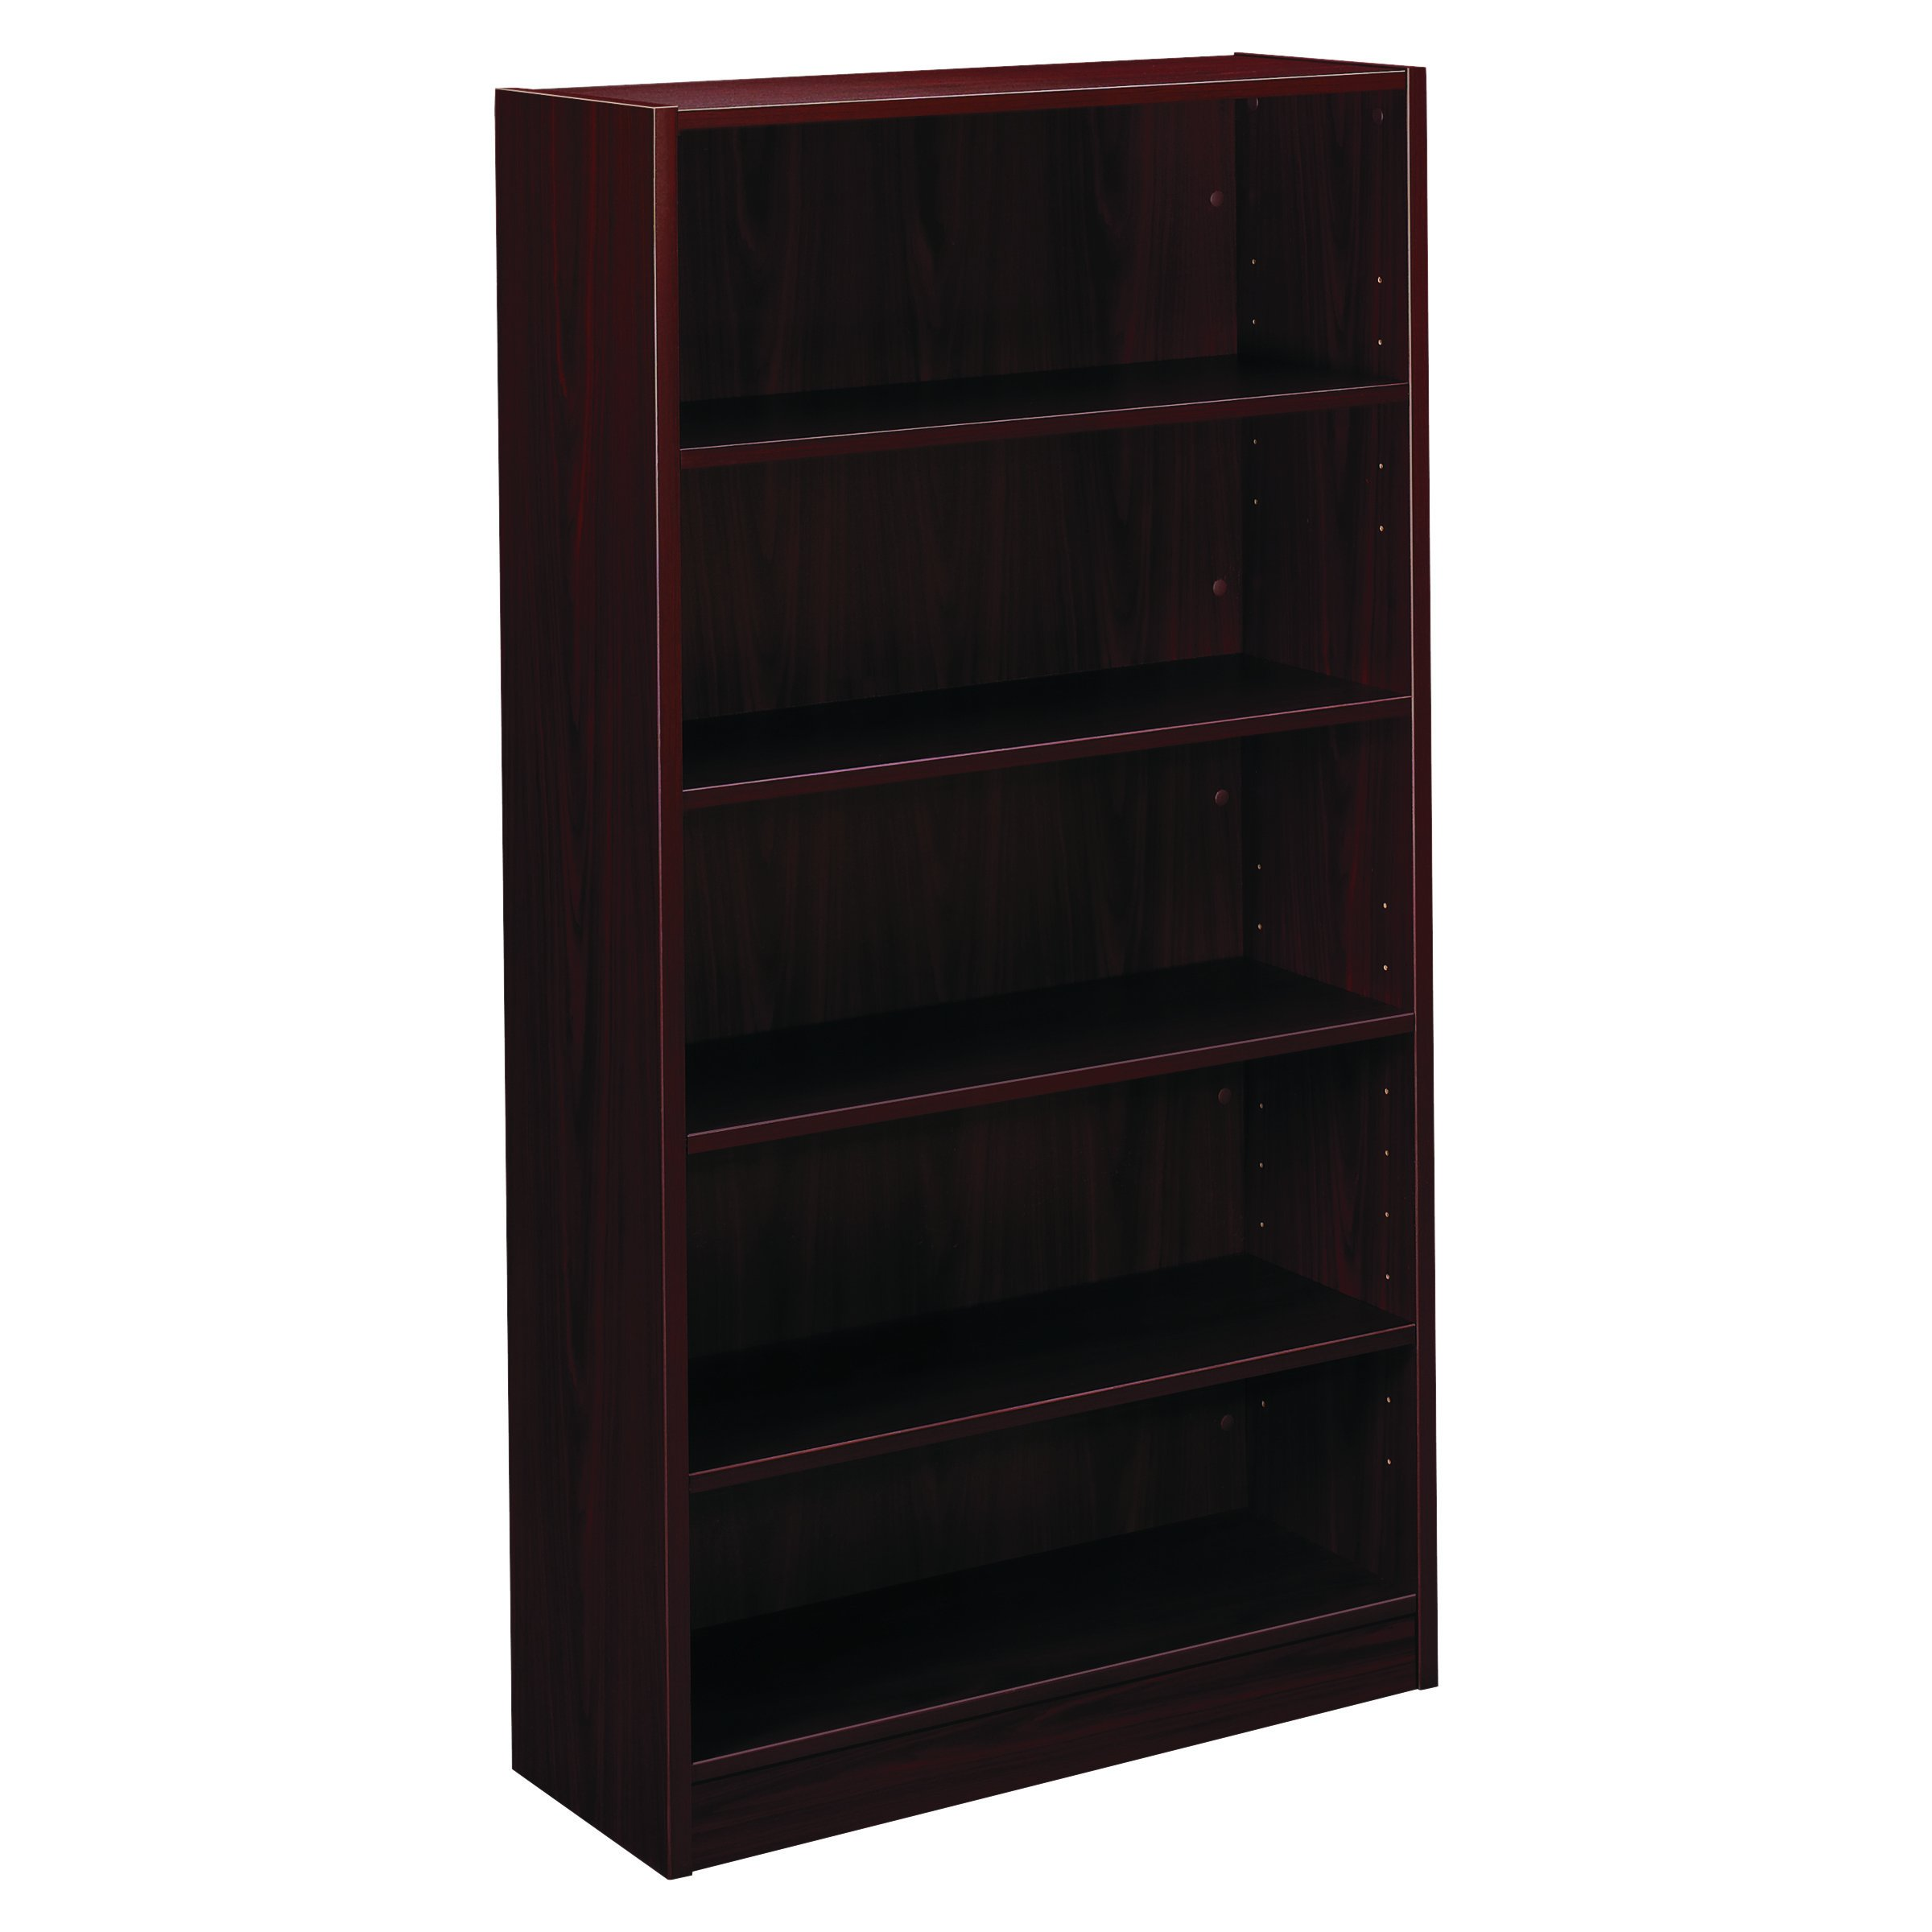 Basyx 5-Shelf Bookcase, 32 by 13-13/16 by 65-3/16-Inch, Mahongay